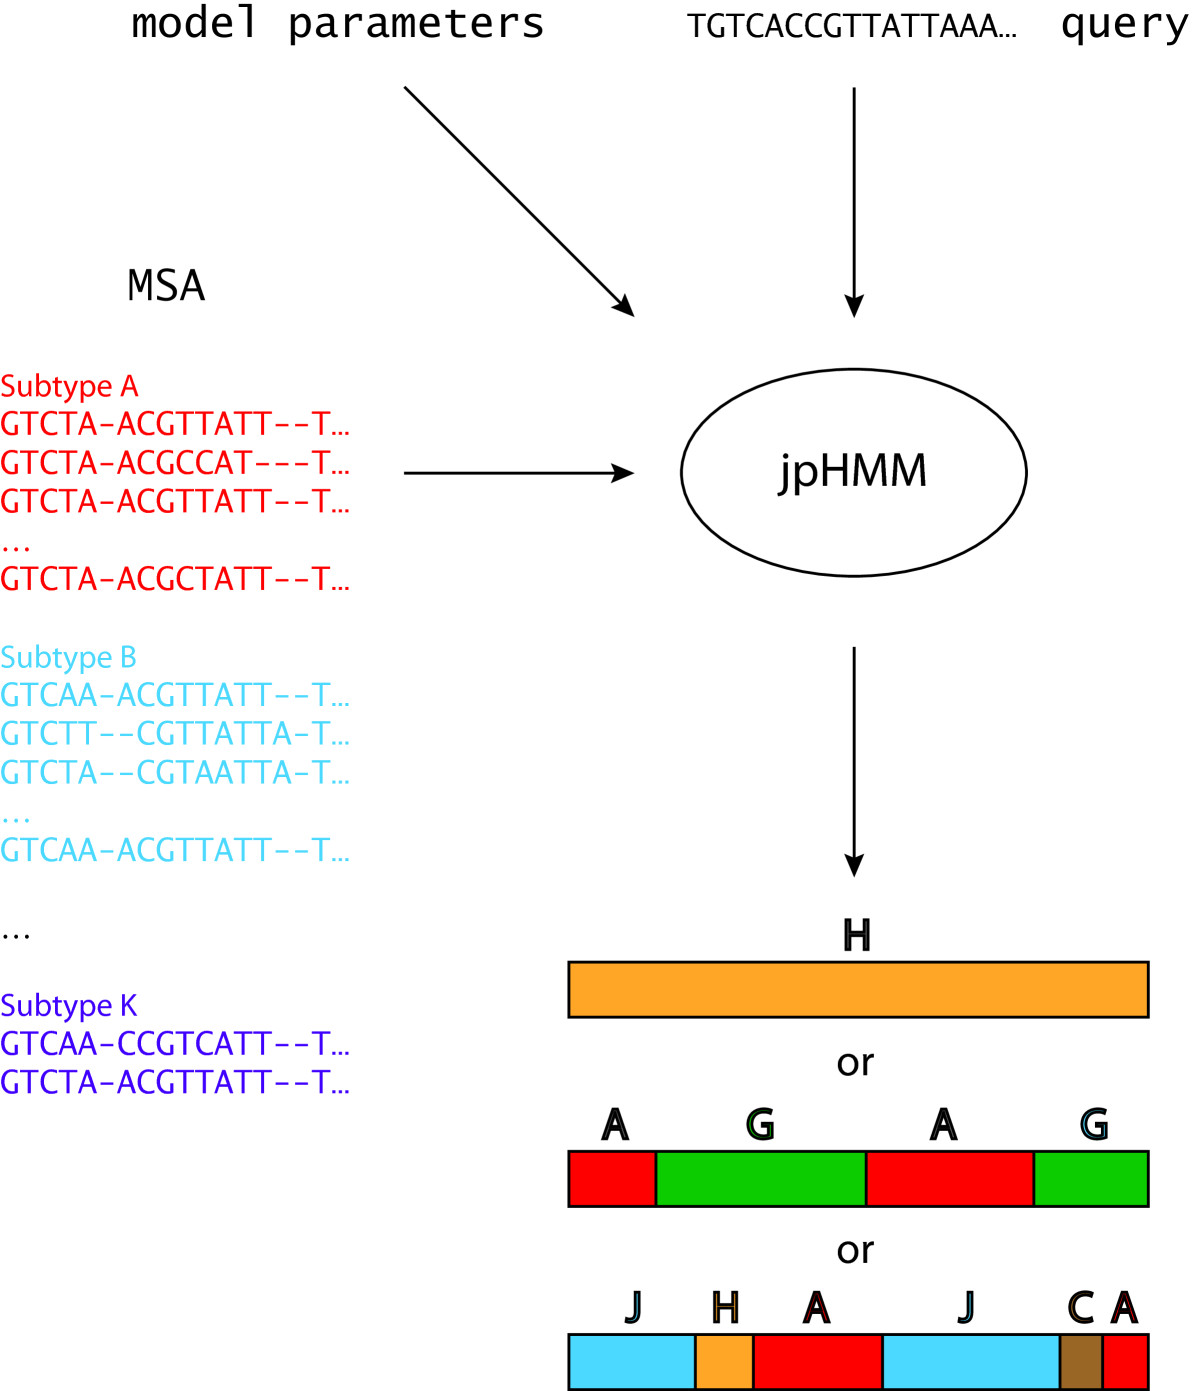 https://static-content.springer.com/image/art%3A10.1186%2F1471-2105-15-205/MediaObjects/12859_2013_Article_6515_Fig2_HTML.jpg